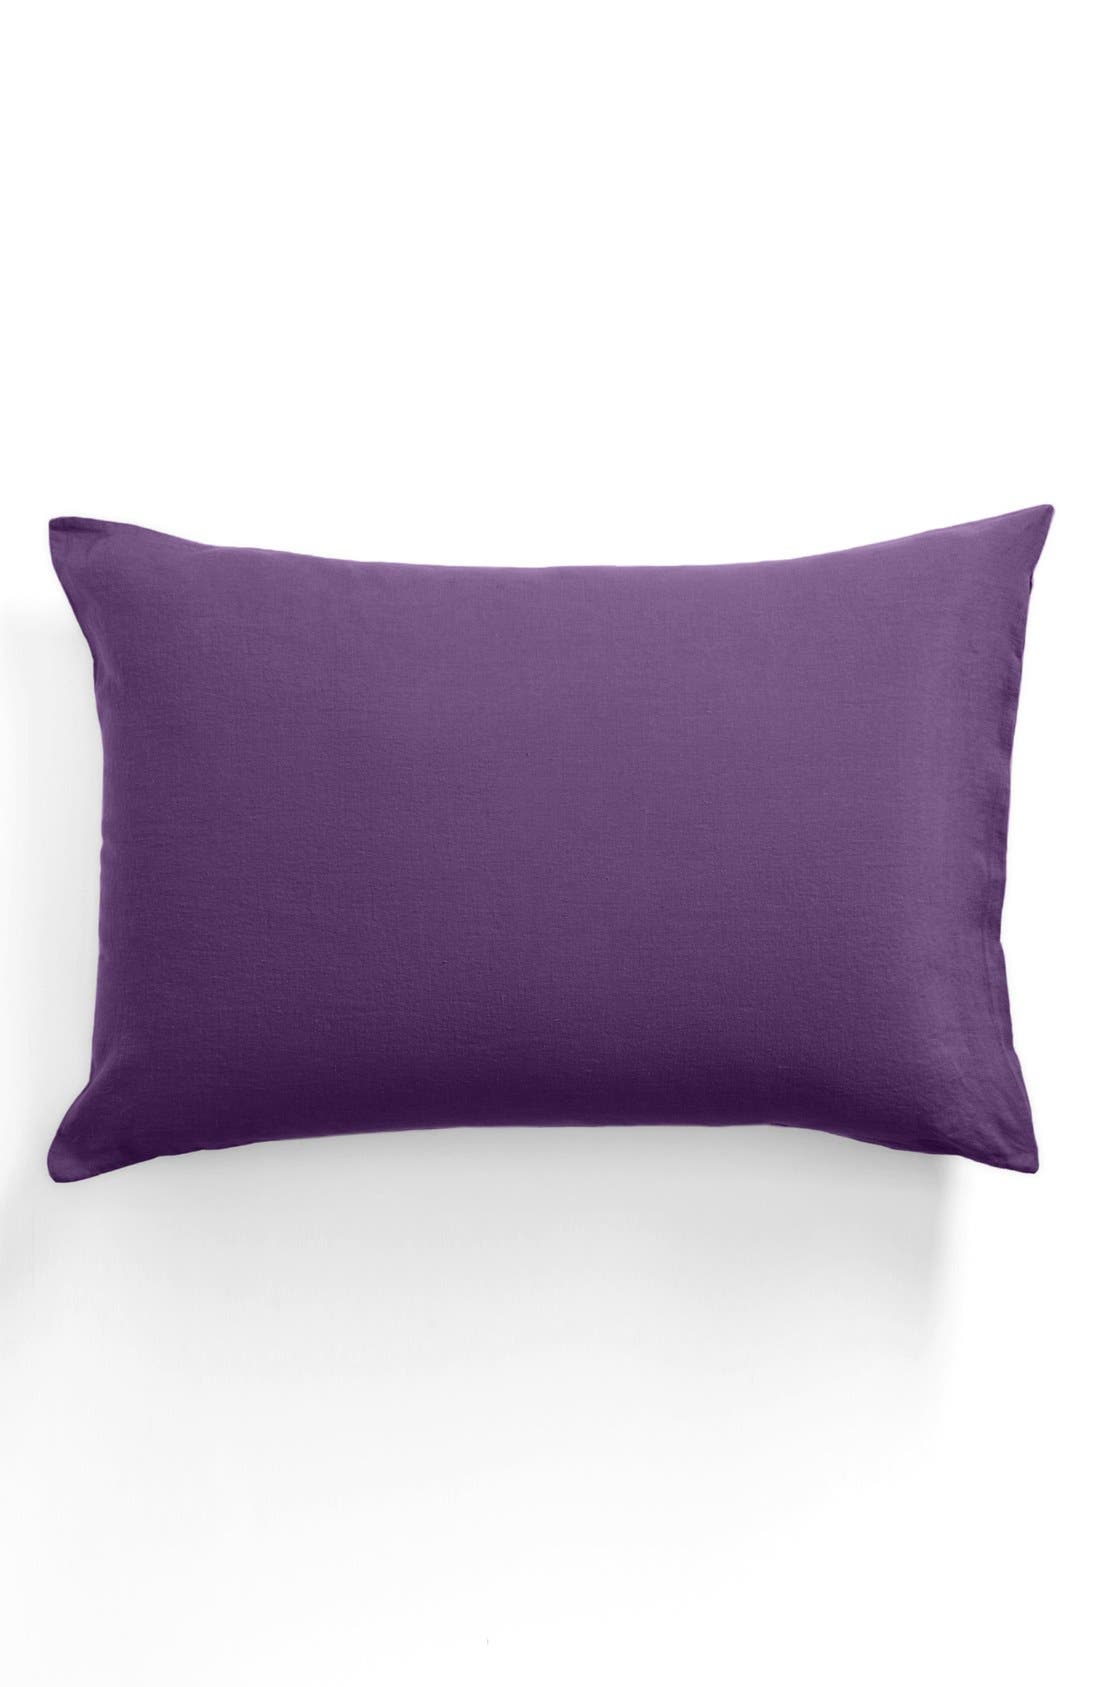 Alternate Image 1 Selected - Merci Washed Linen Pillowcase